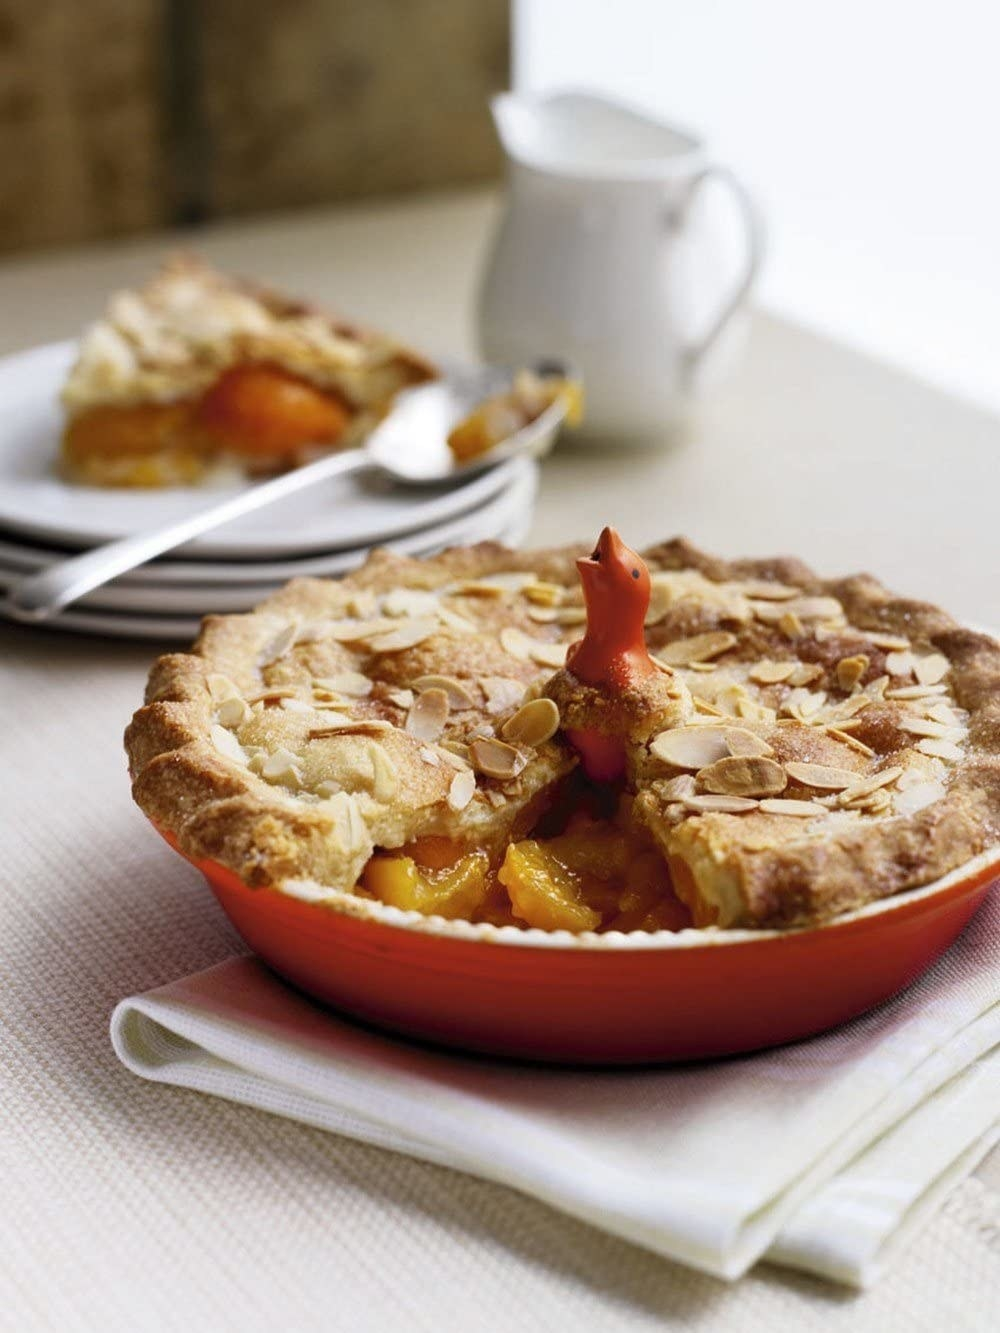 A peach pie with an orange pie bird baked into the middle